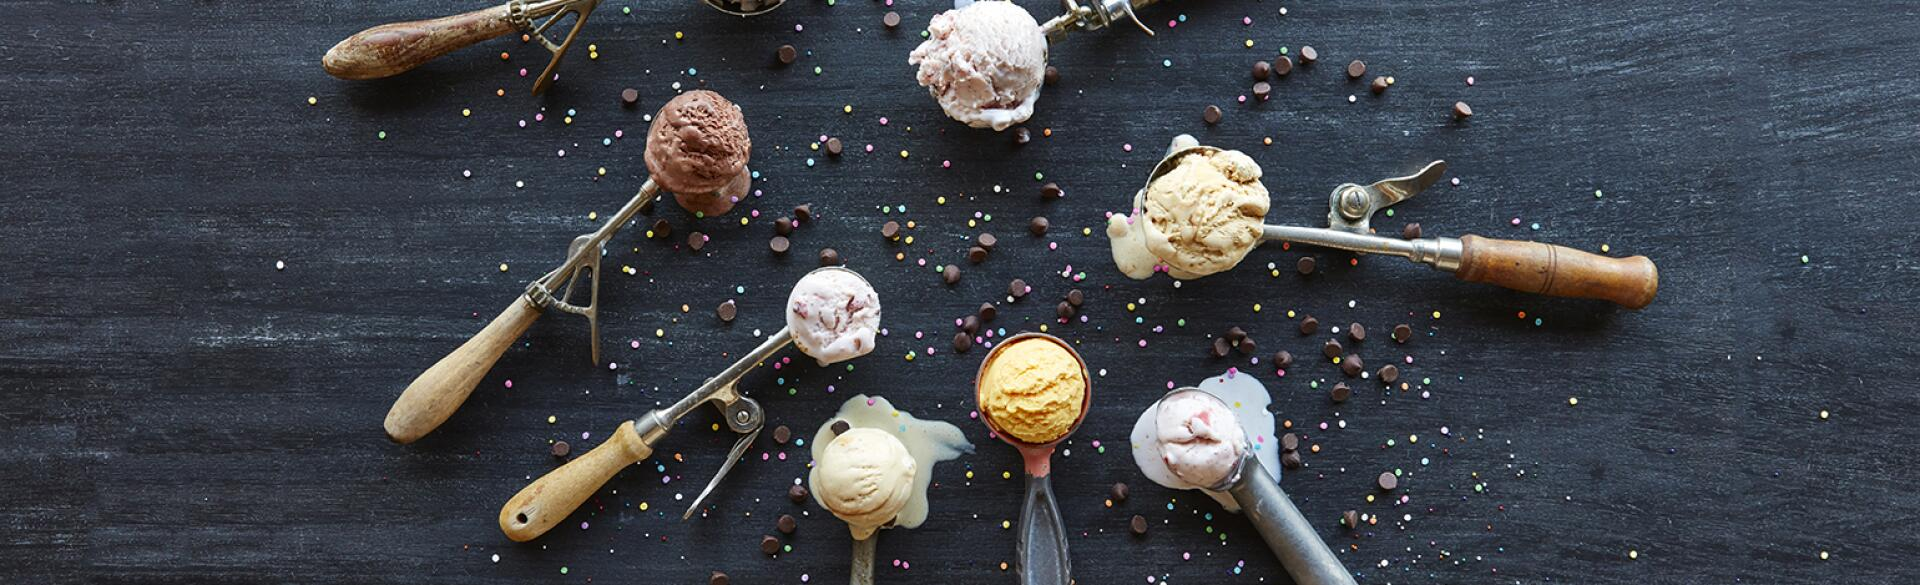 A photo of a group of ice cream scoops holding healthy ice cream.